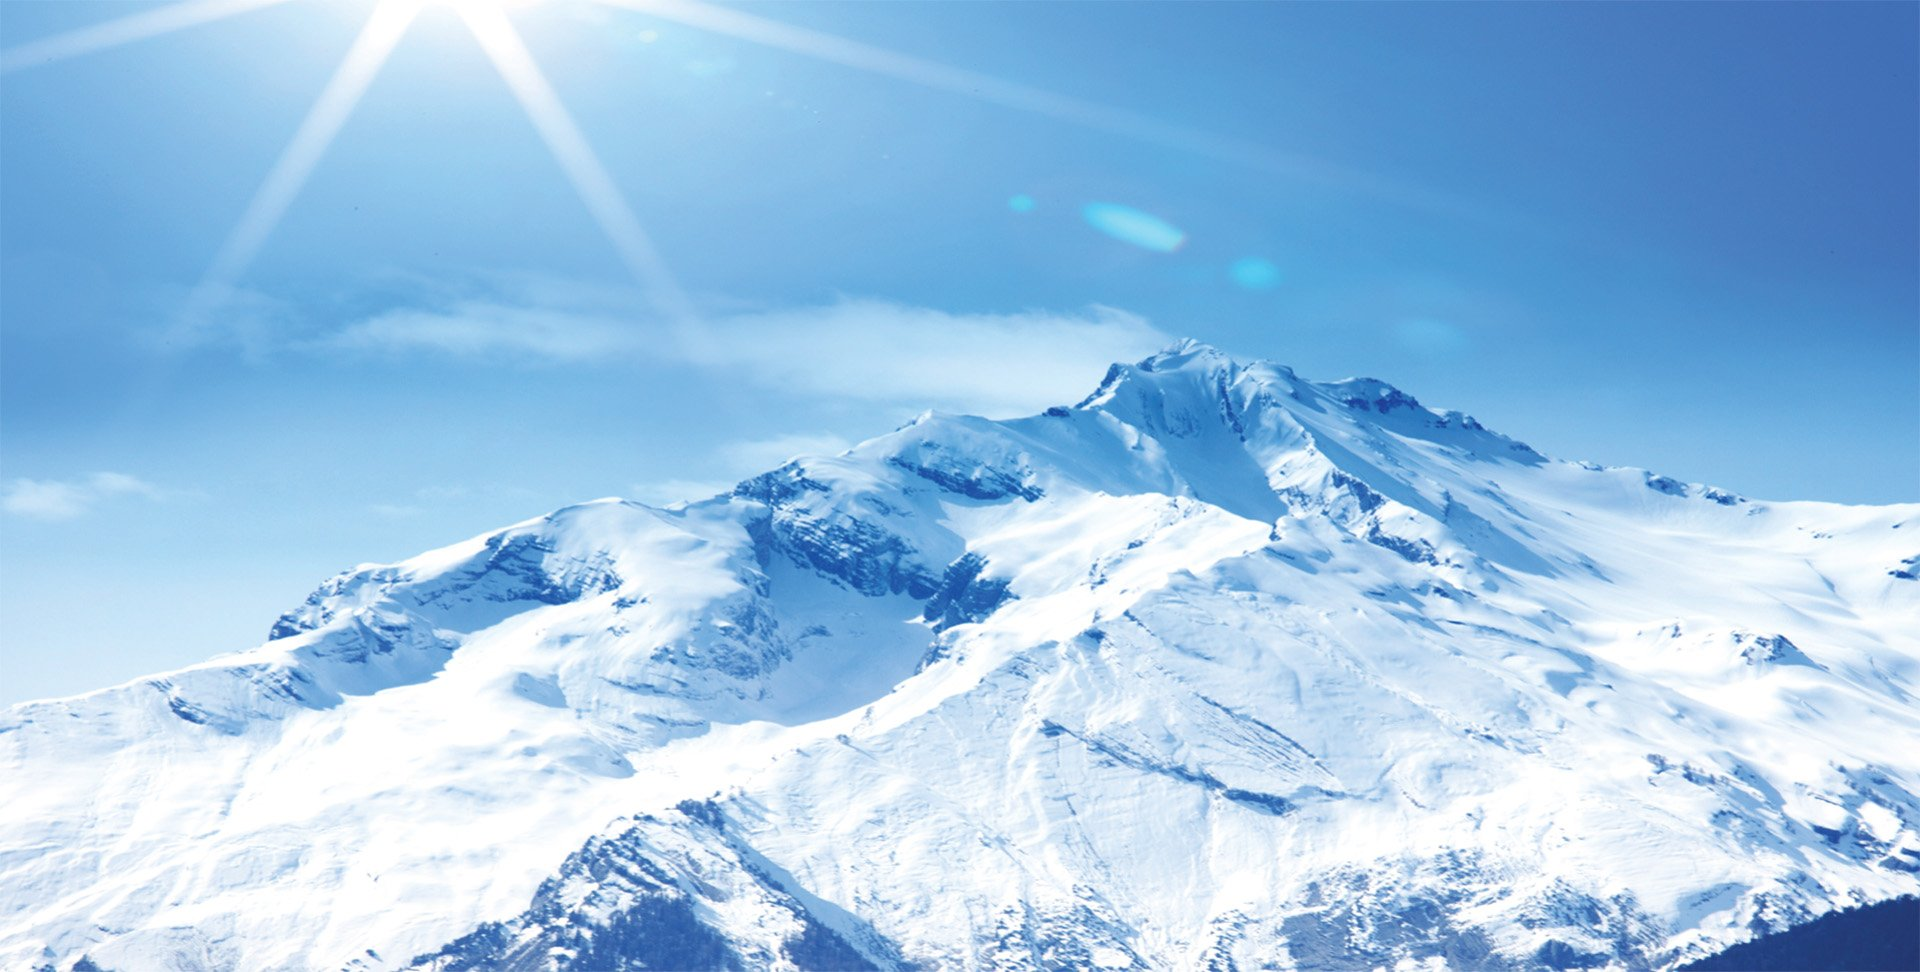 mountain peak with snow and sunlight